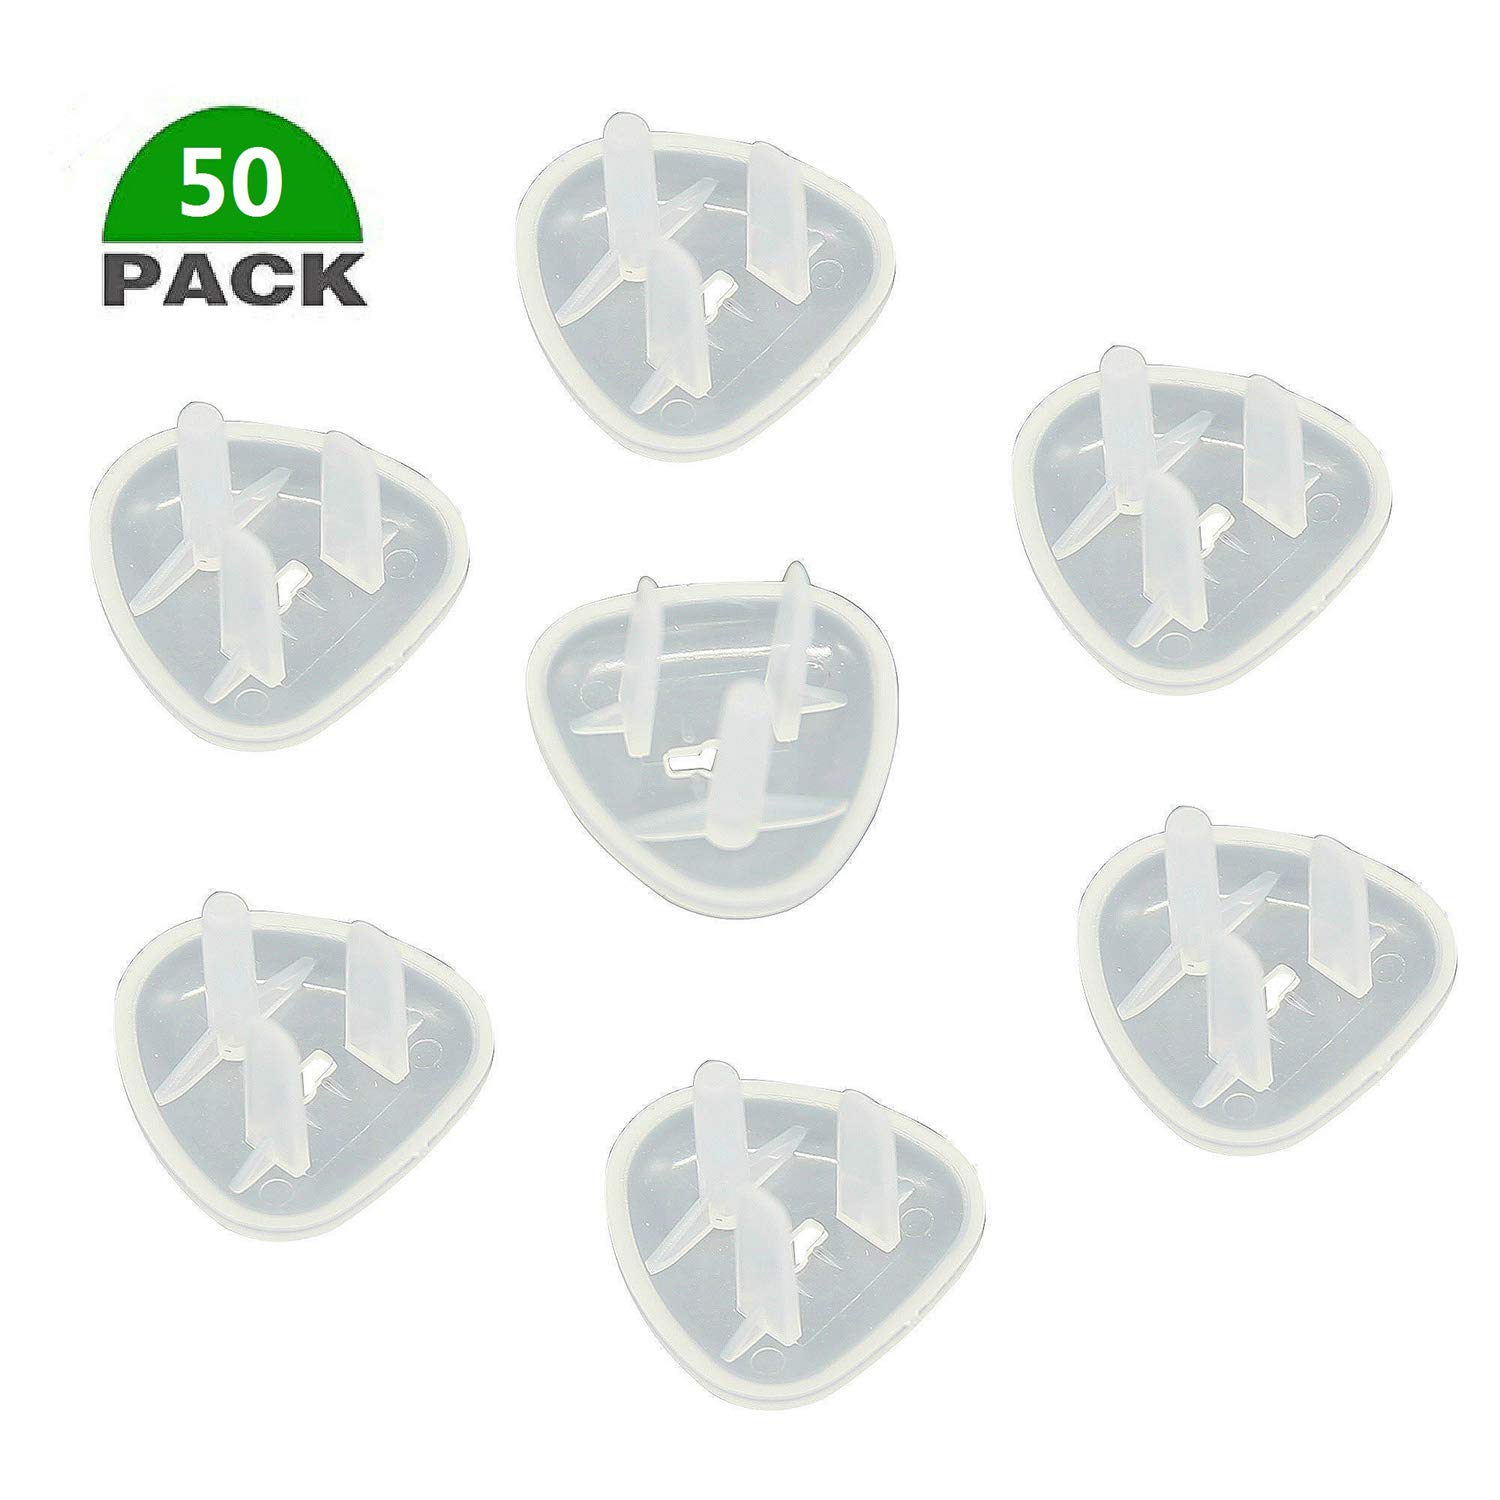 (50 Pack) Clear Outlet Covers,HEPNA Baby Proofing Plug Covers 3 Prong-Protect Child from Electric Shock